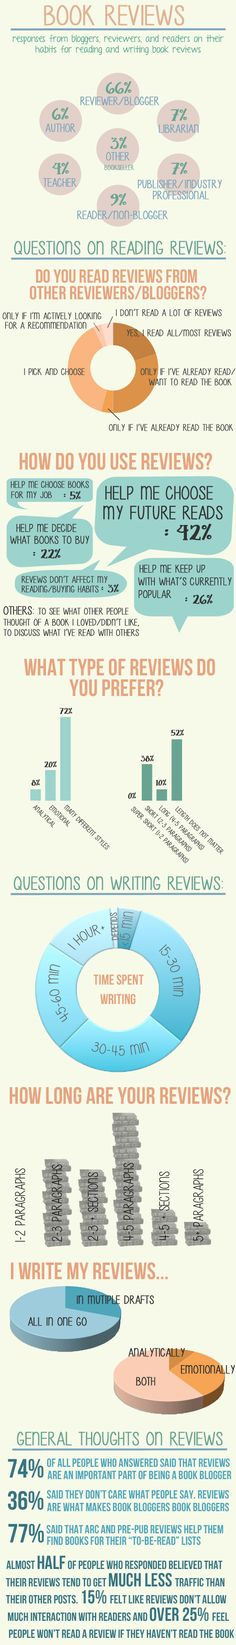 An infographic on book reviews #infographic #reading #review (from The Book Addict's Guide)